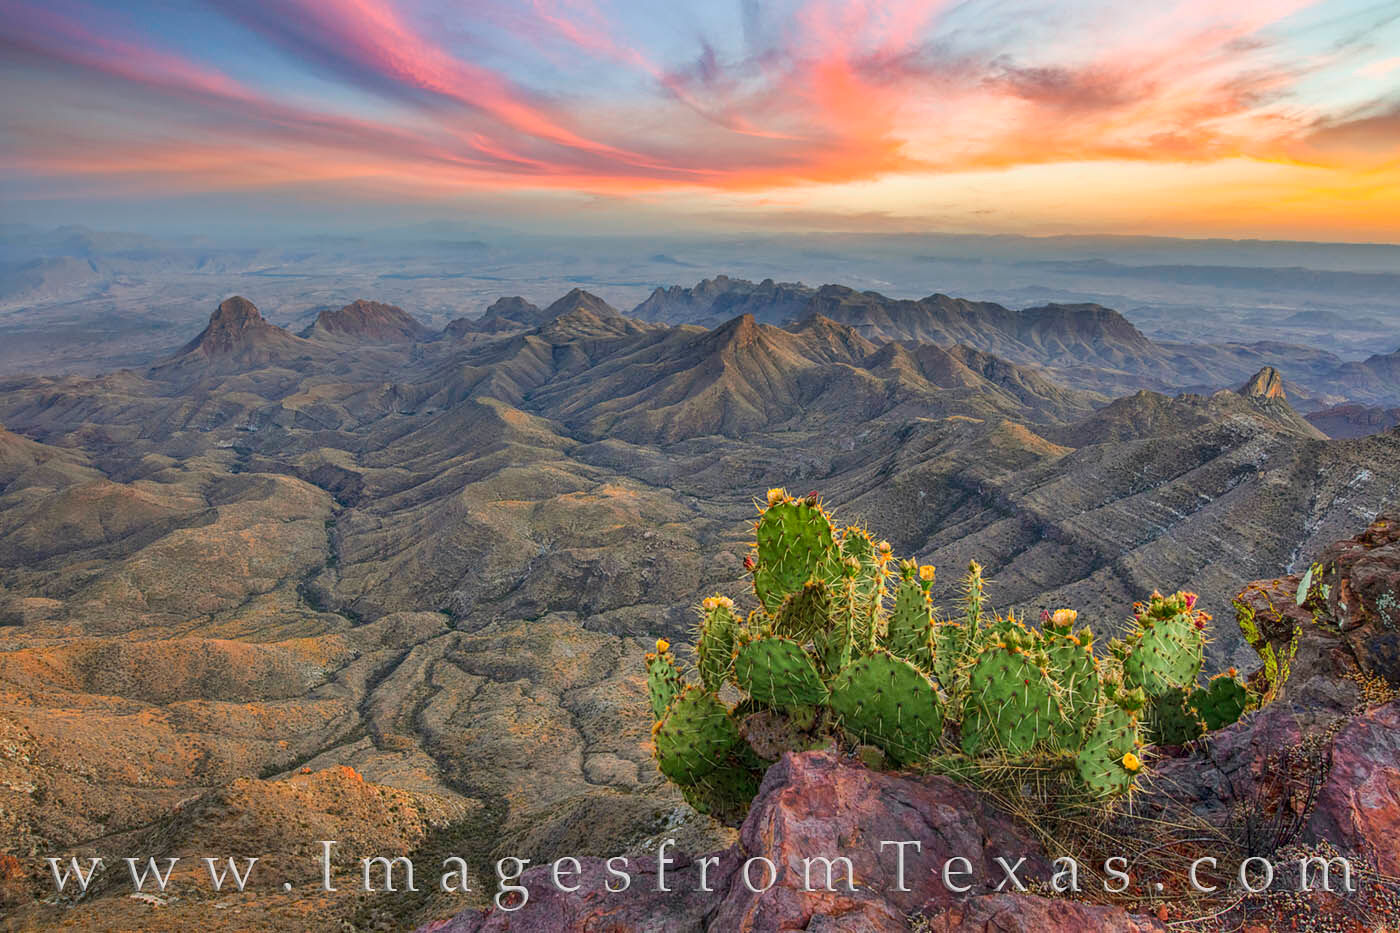 big bend national park, big bend images, south rim, south rim hike, texas sunset, texas hikes, texas landscapes, texas national parks, photo